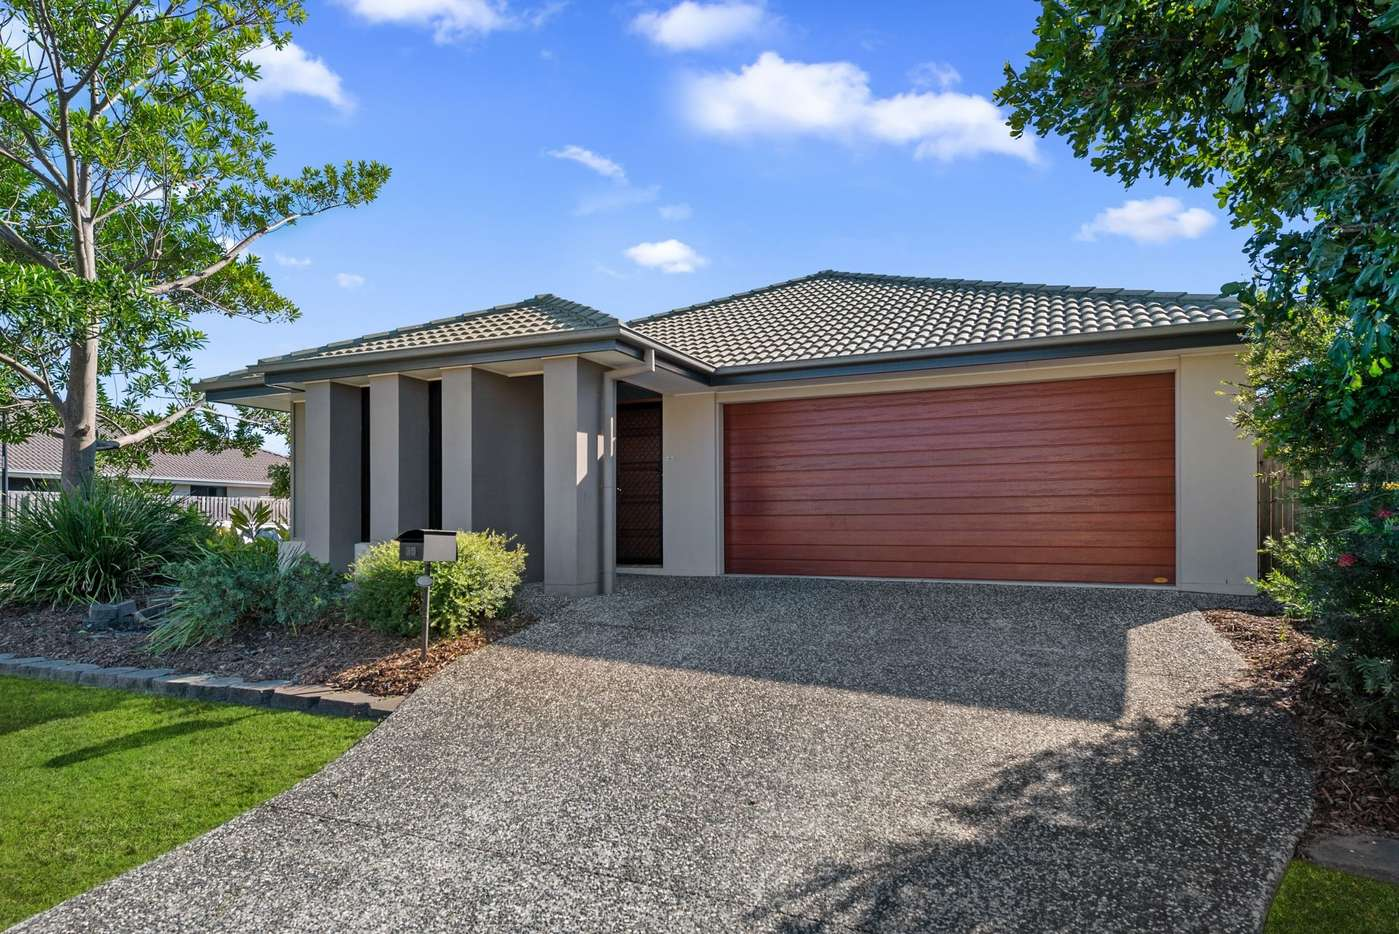 Main view of Homely house listing, 35 Denham Crescent, North Lakes, QLD 4509